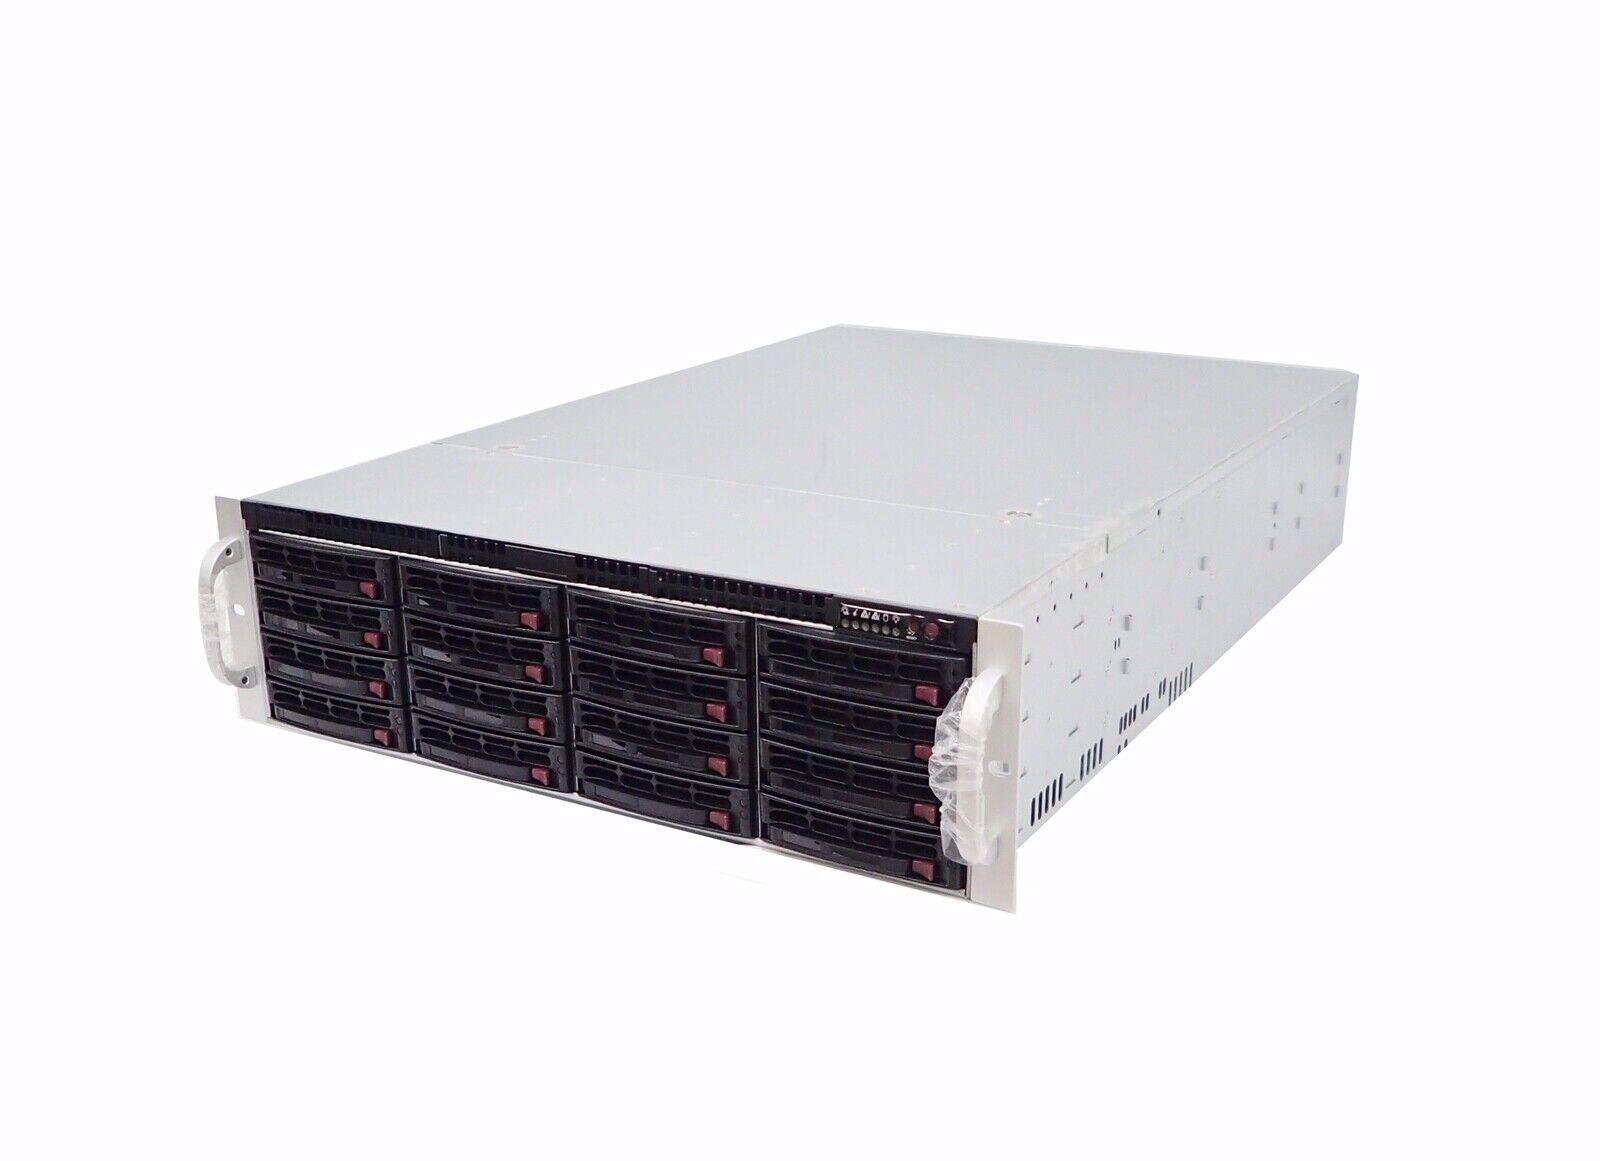 Picture of Supermicro 3U 16 bay 6G SAS/SATA JBOD Enclosure - CSE-836E16-R92JBD